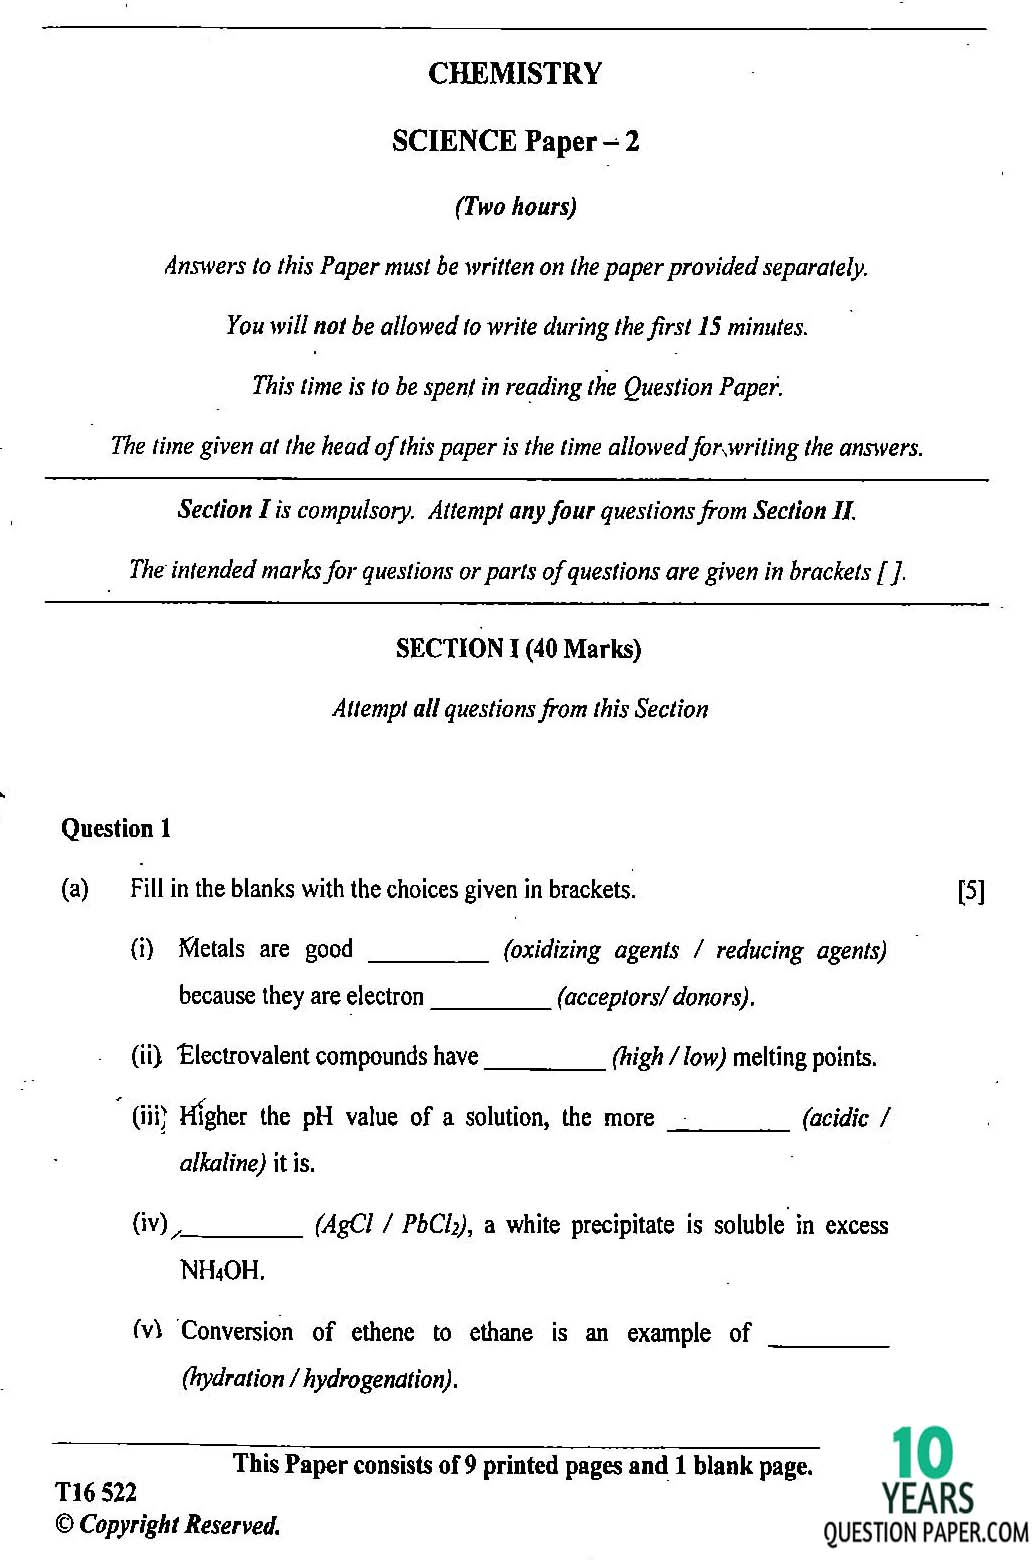 icse chemistry science paper class x years icse 2016 class 10th science chemistry paper 2 question paper